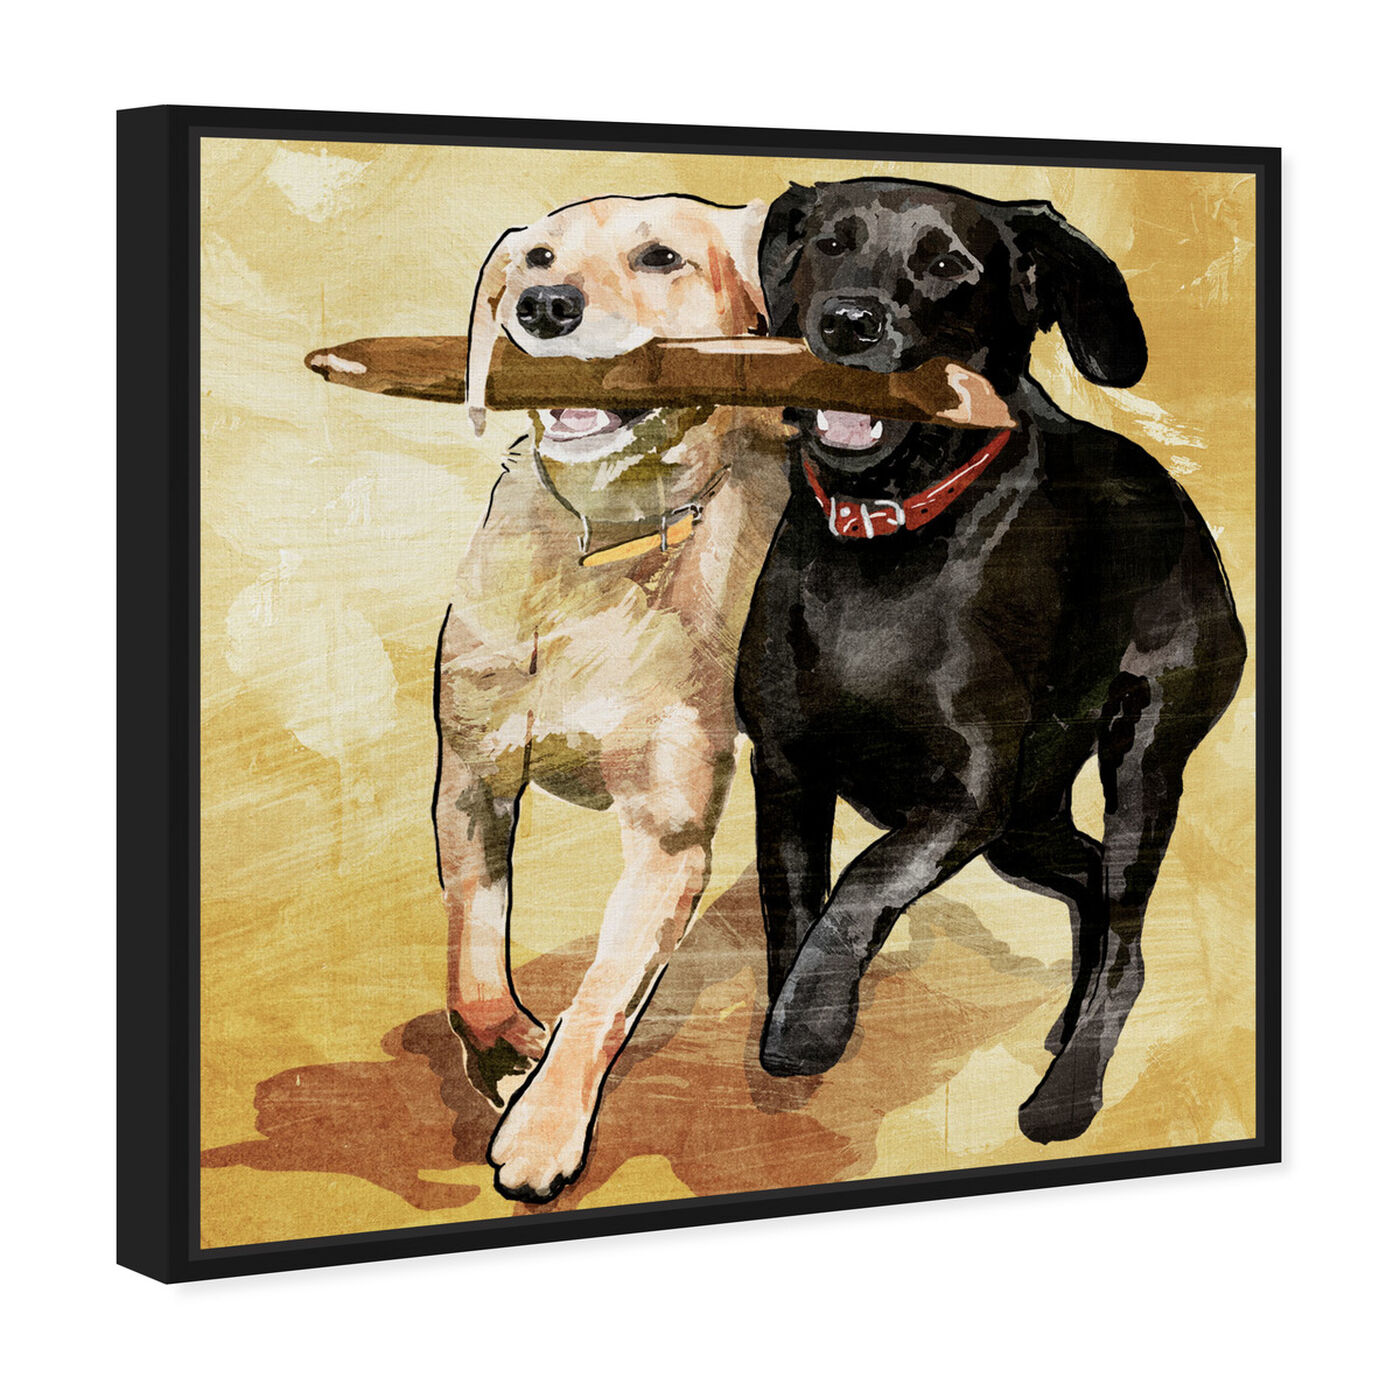 Angled view of Playtime featuring animals and dogs and puppies art.